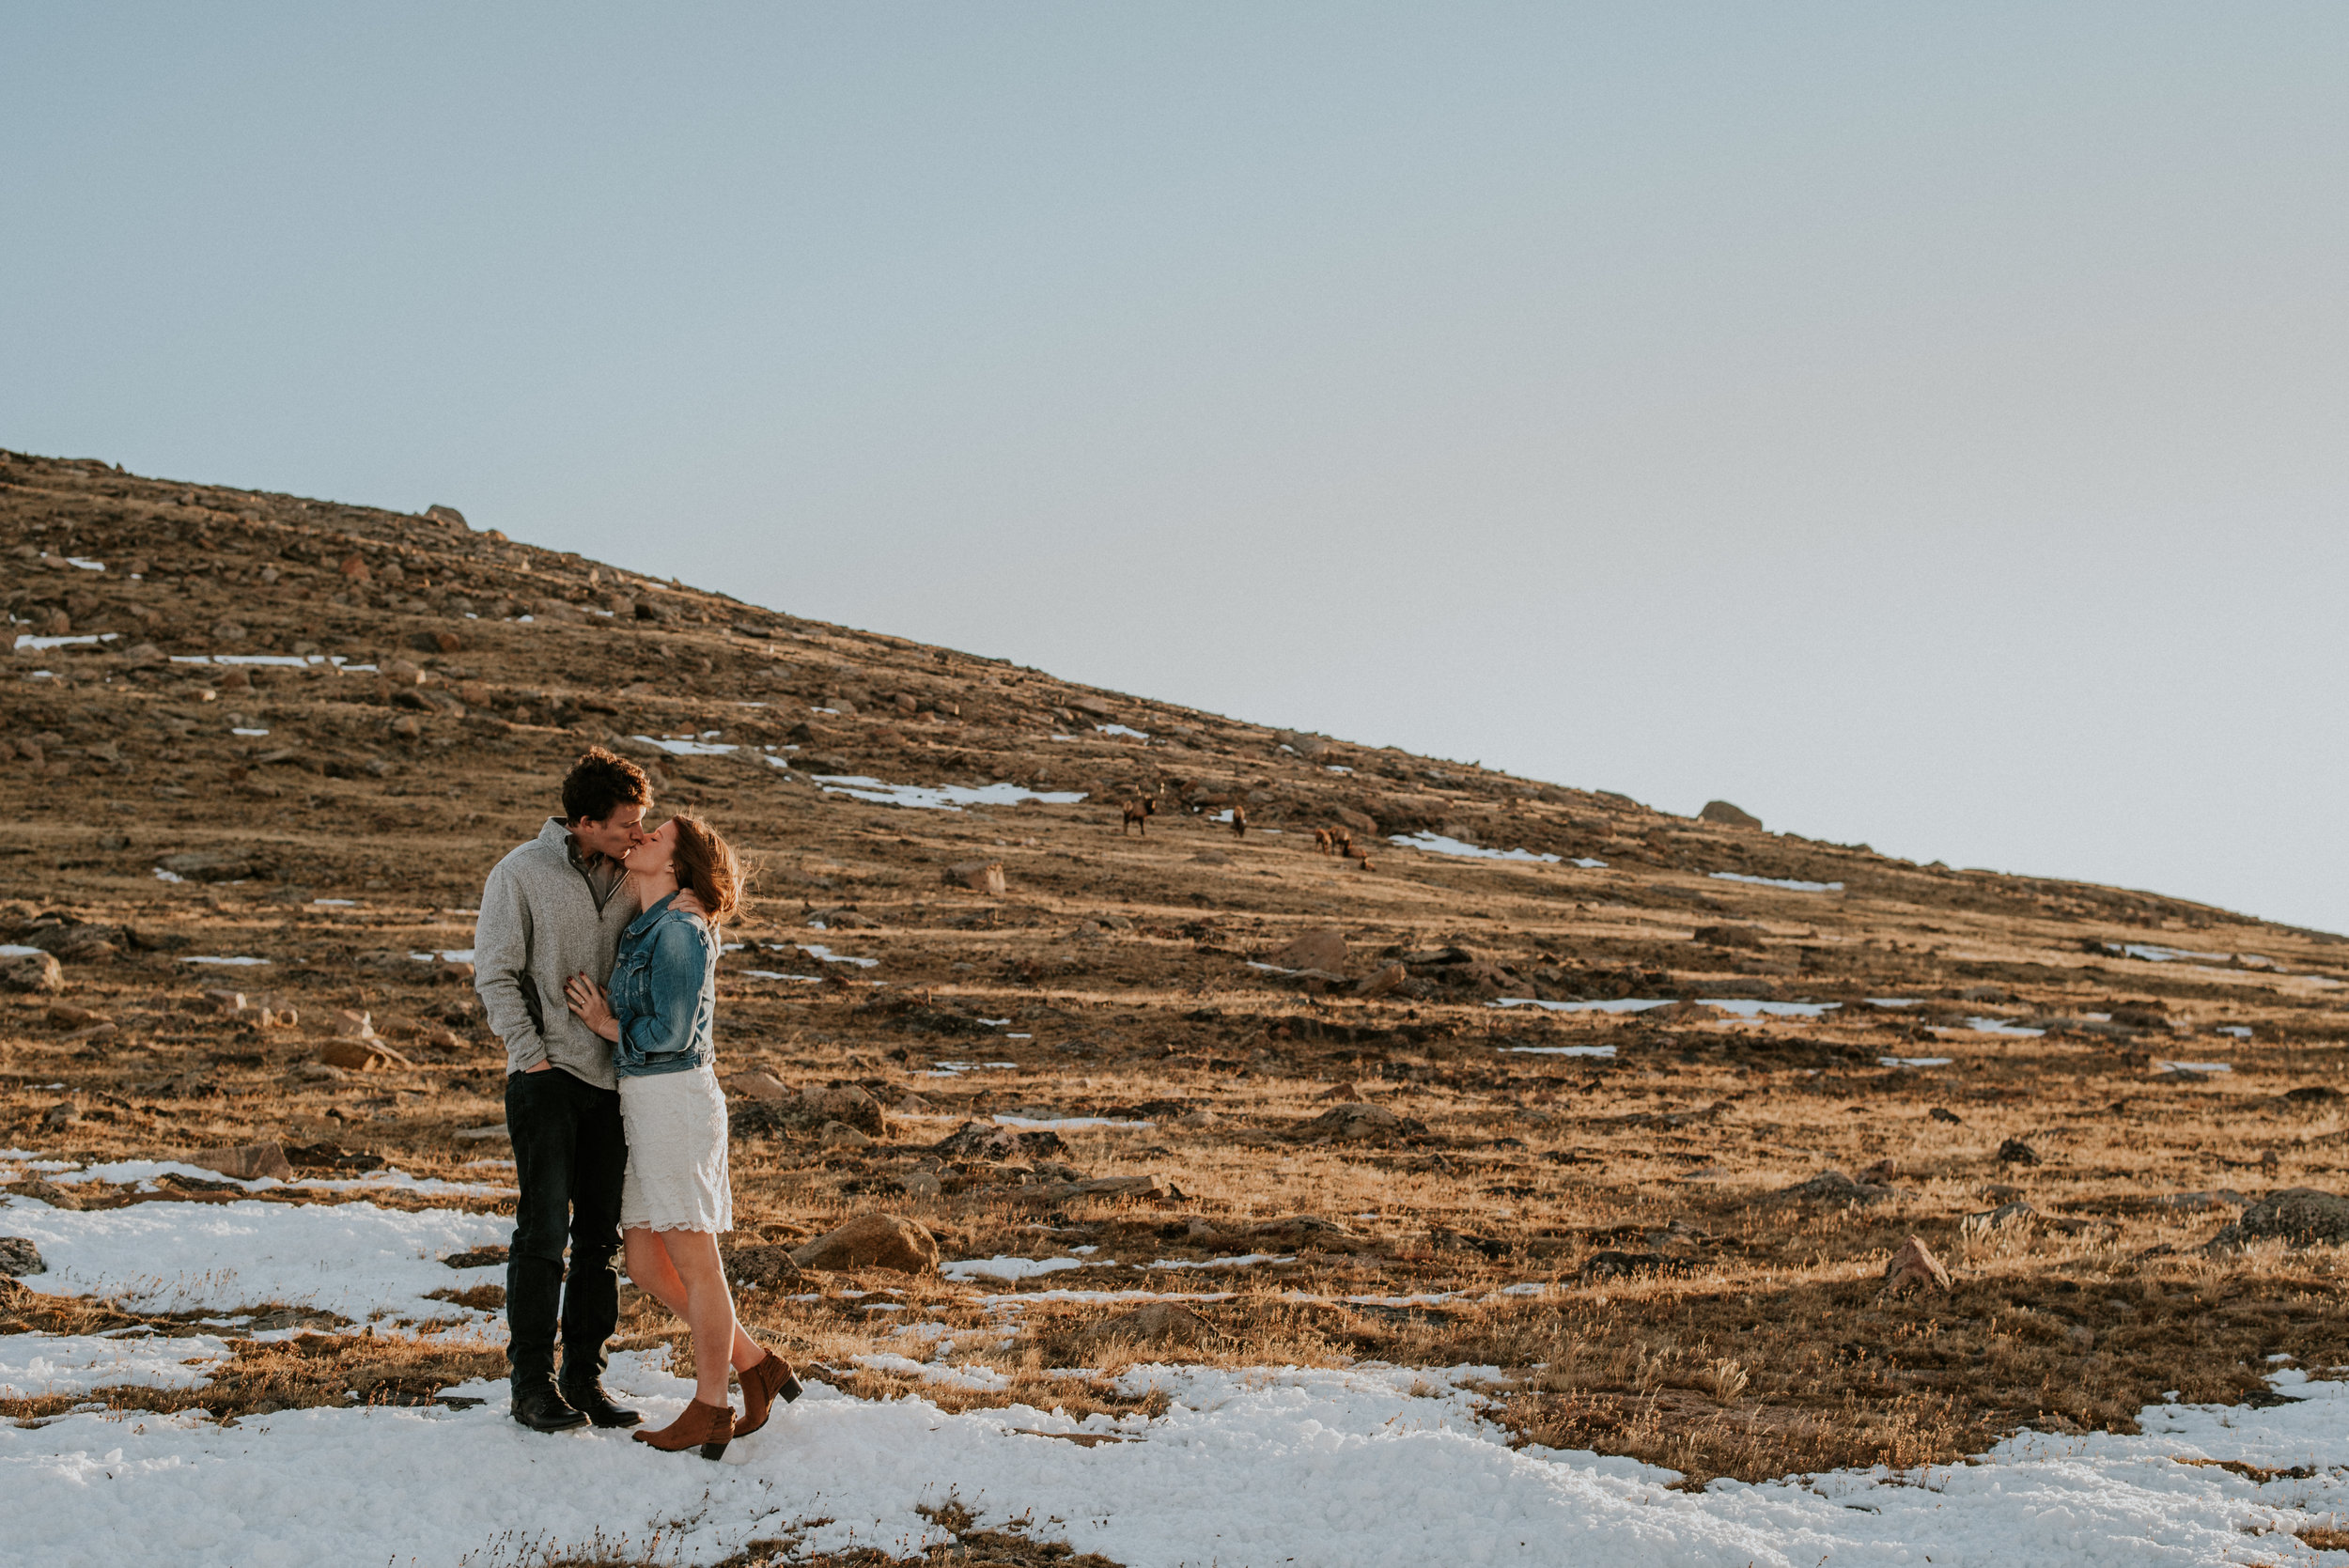 Trail Ridge Road Sunrise Snowy engagement session-16.jpg